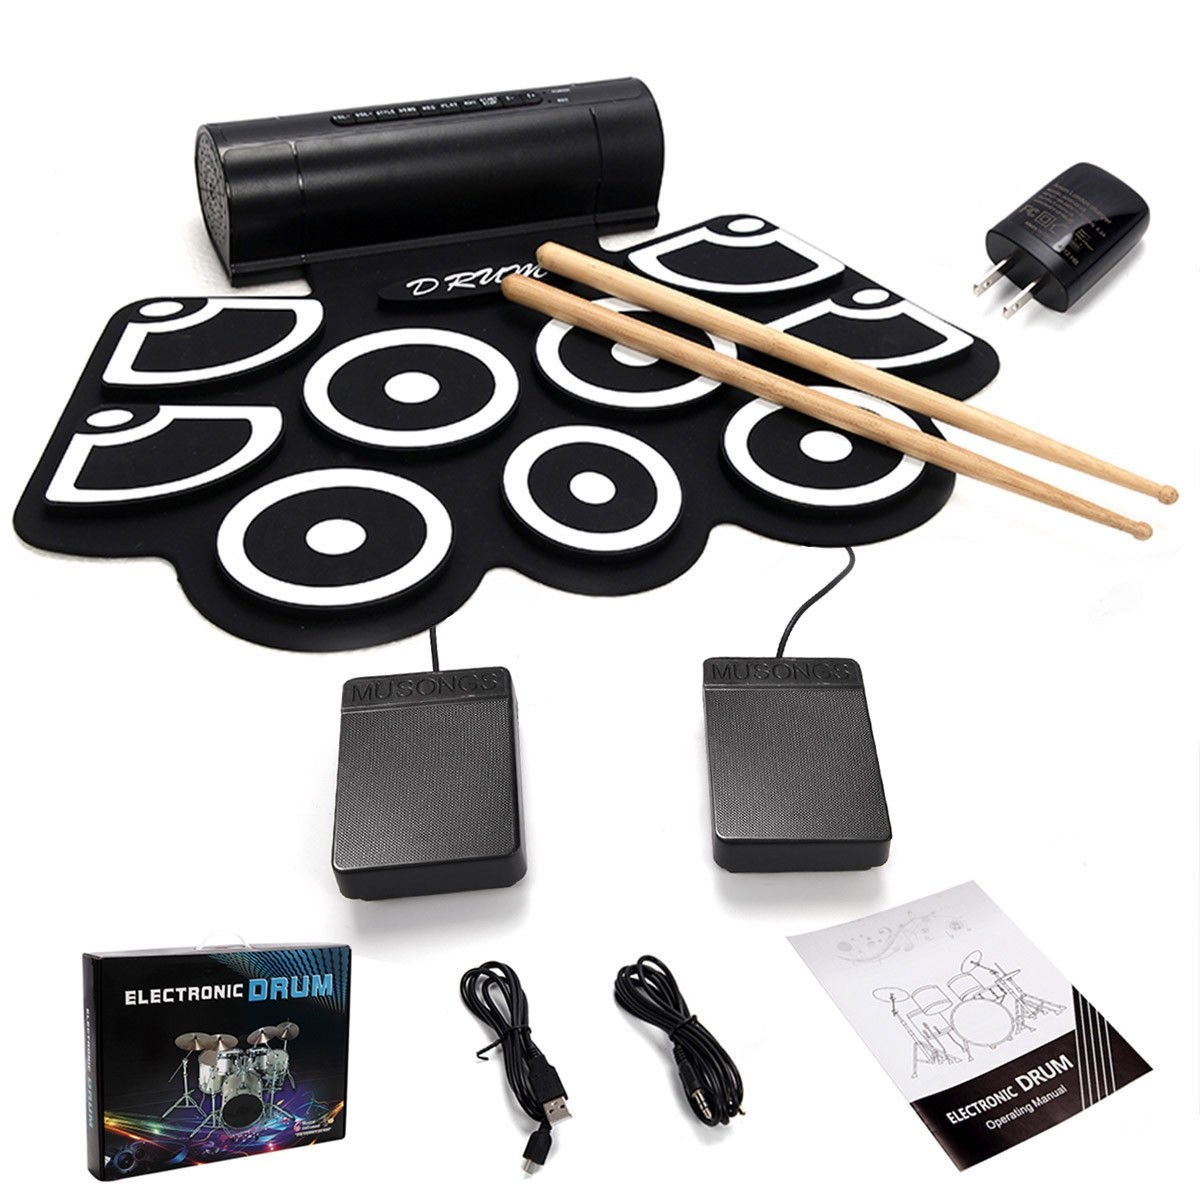 Costzon 9 Pad Electronic Roll Up Drum Kit, USB MIDI With Built-in Speakers, Foot Pedals, Drum Sticks, Power Supply by Costzon